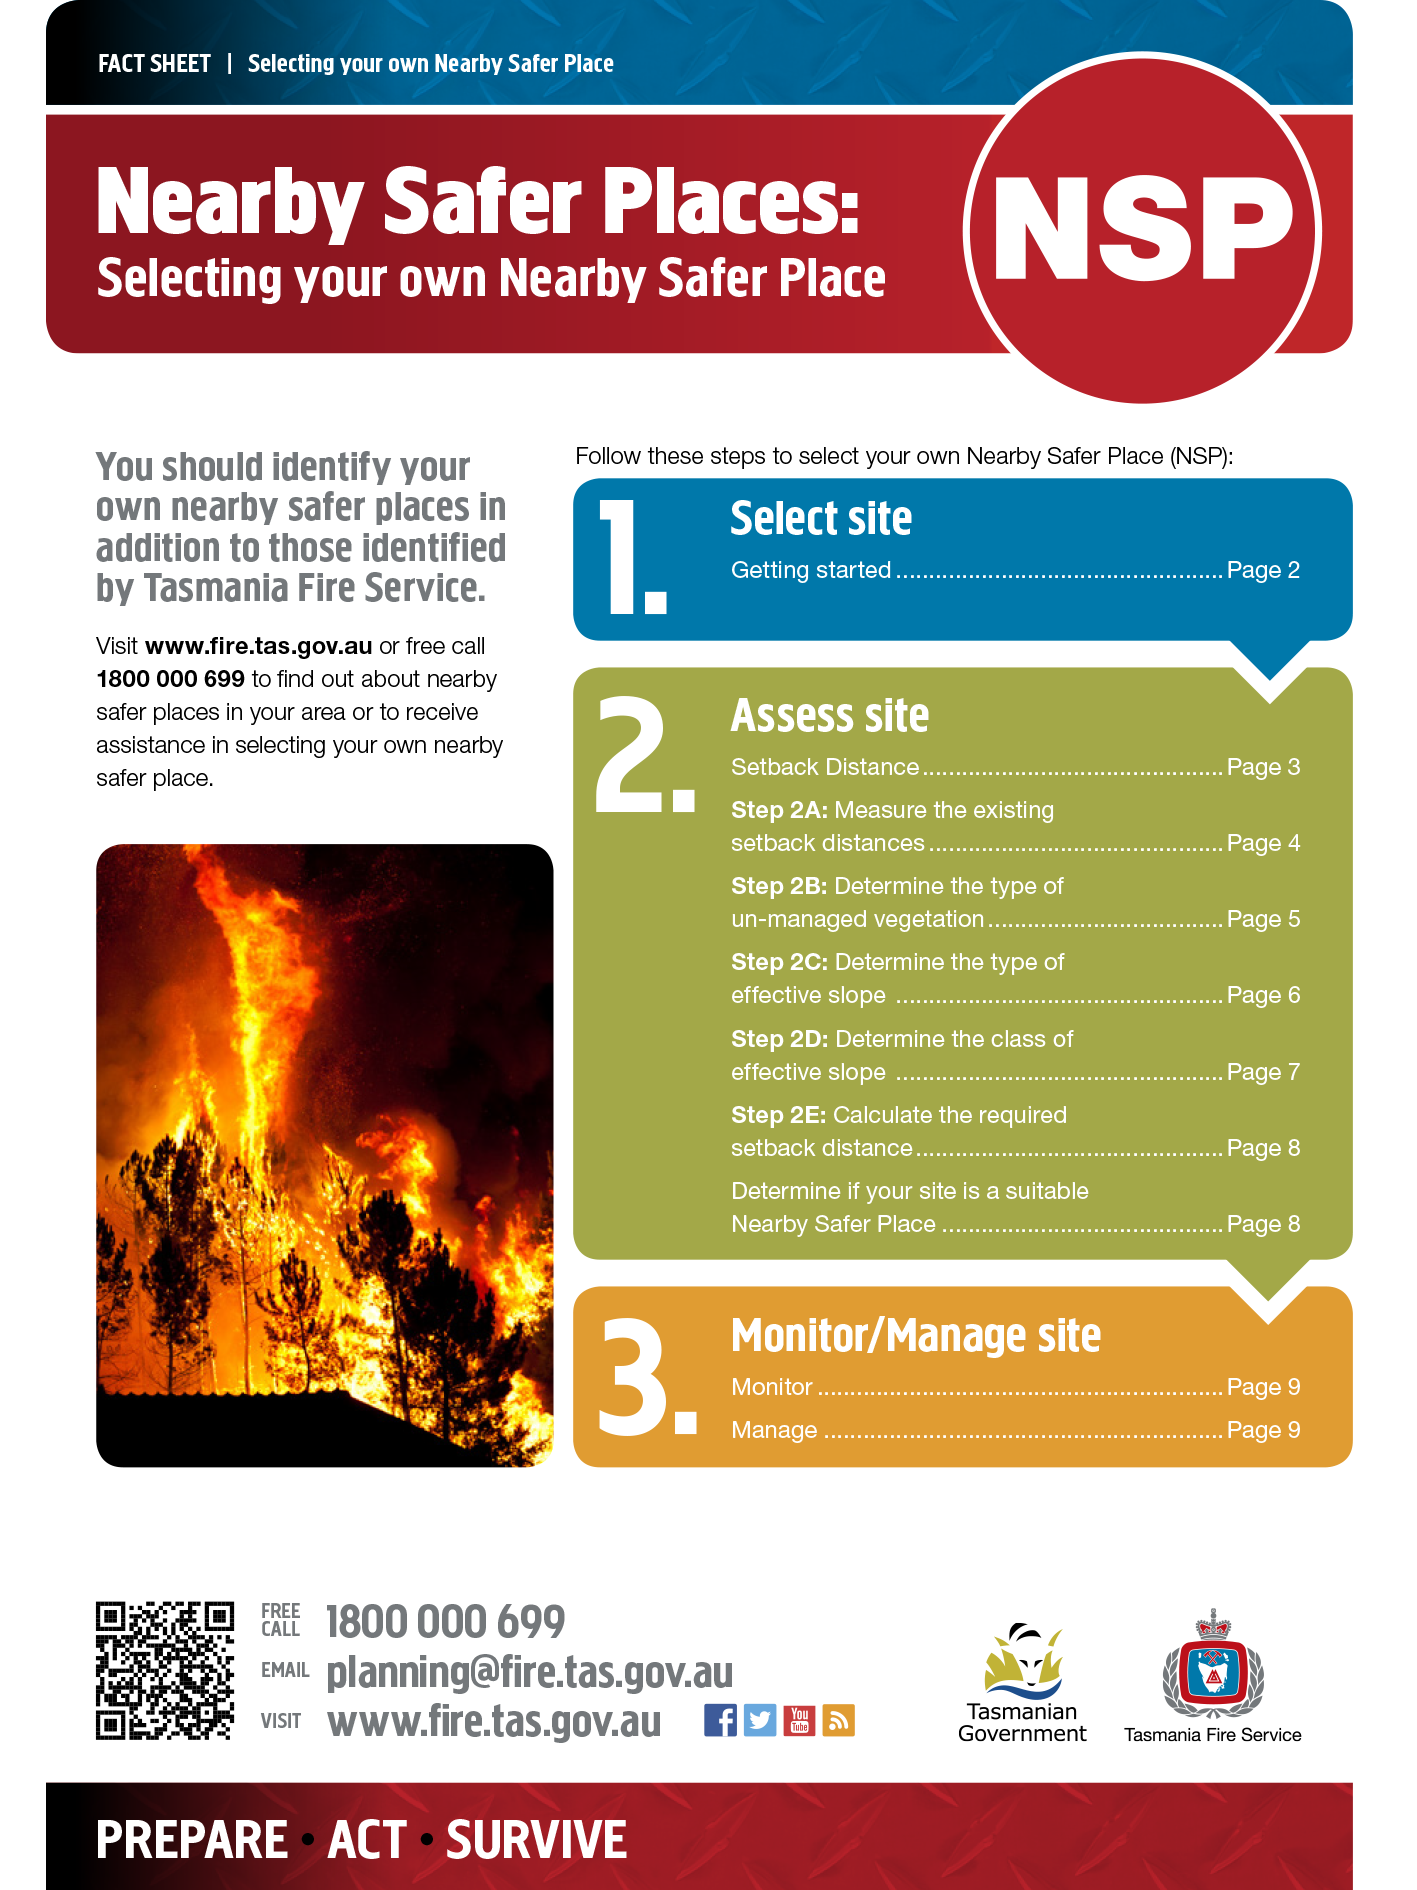 NSP Selecting Your own Factsheet